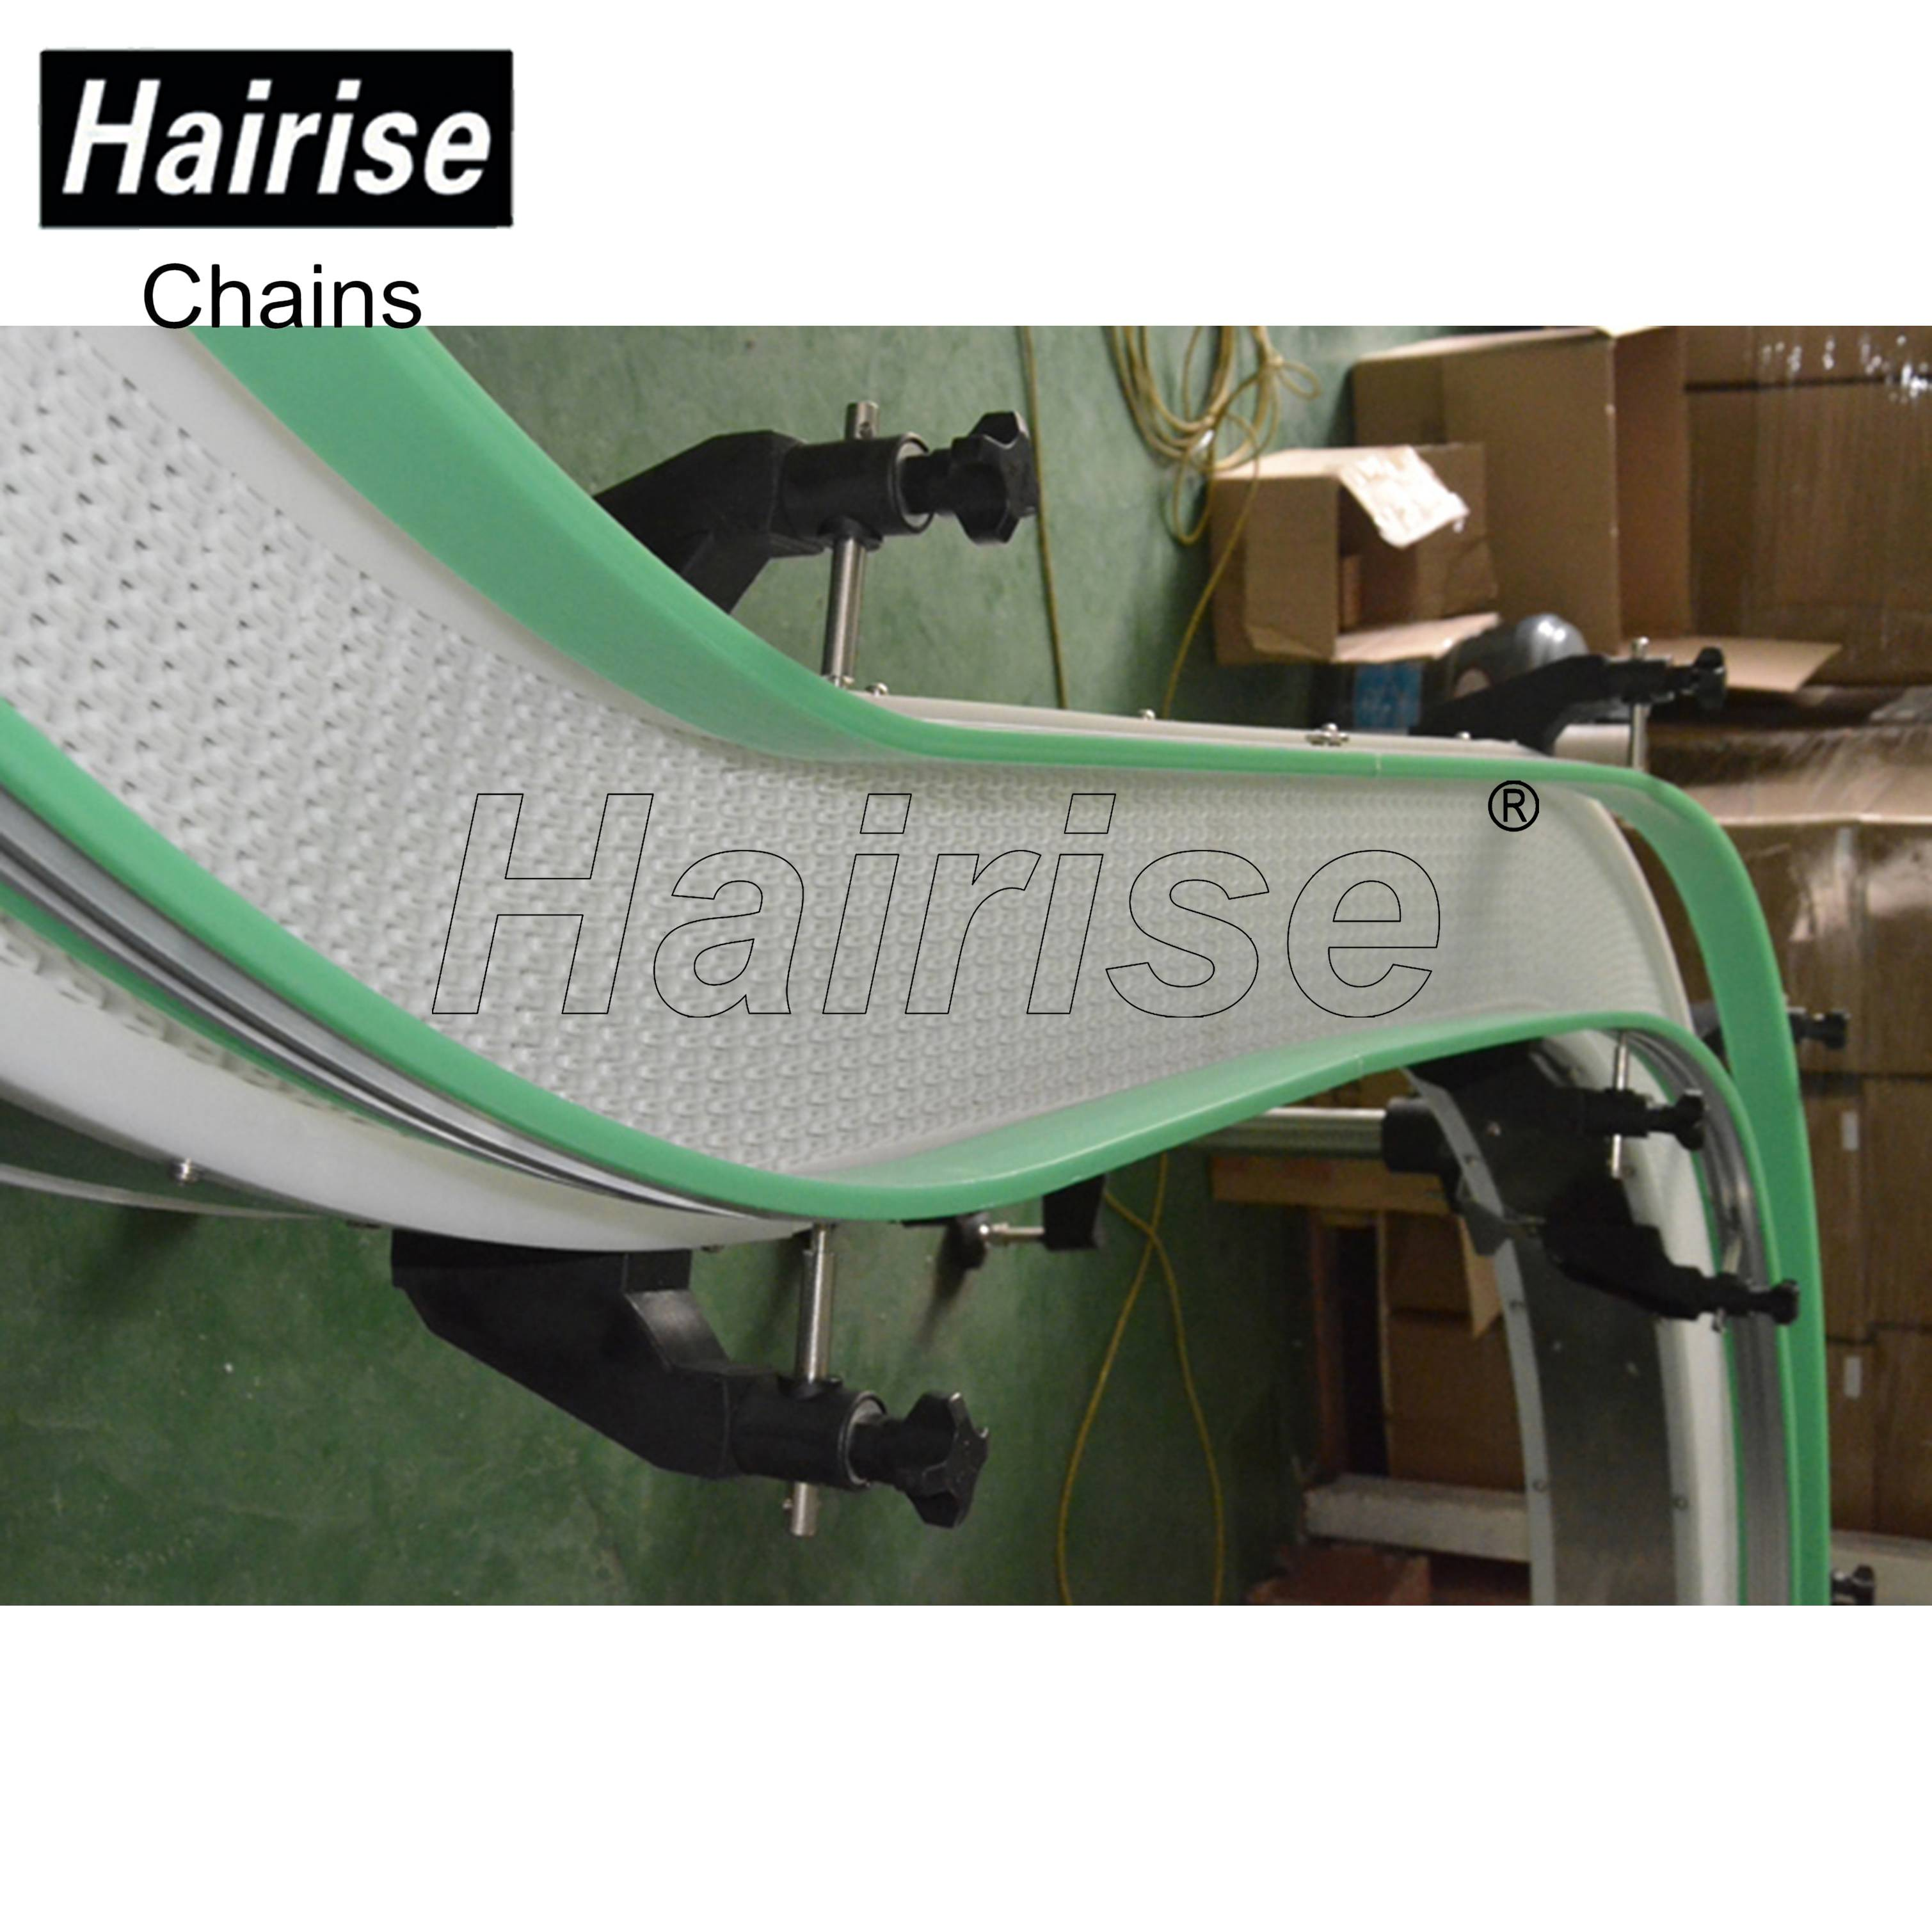 Hairise White Modular Belt Conveyor with S Curve Featured Image